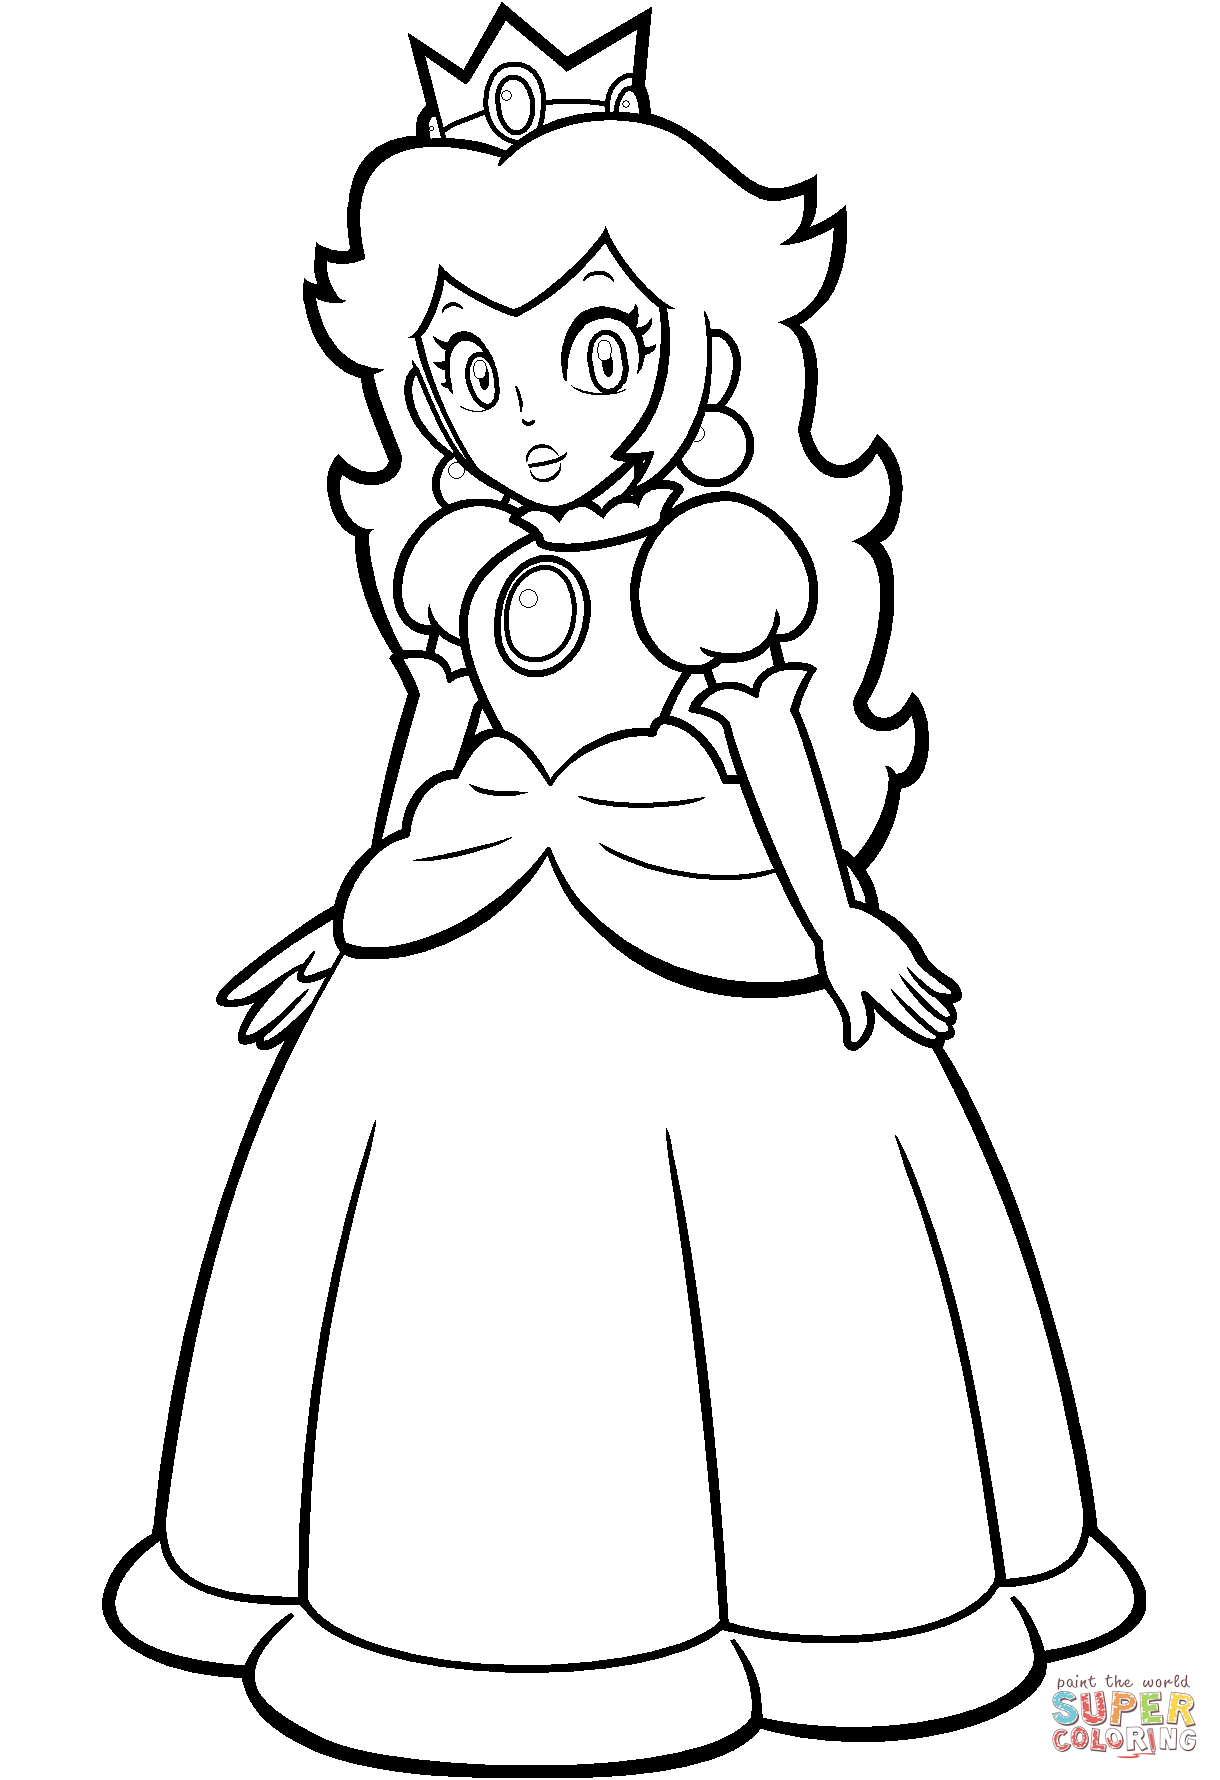 flame princess coloring pages flame princess coloring pages at getcoloringscom free princess flame pages coloring